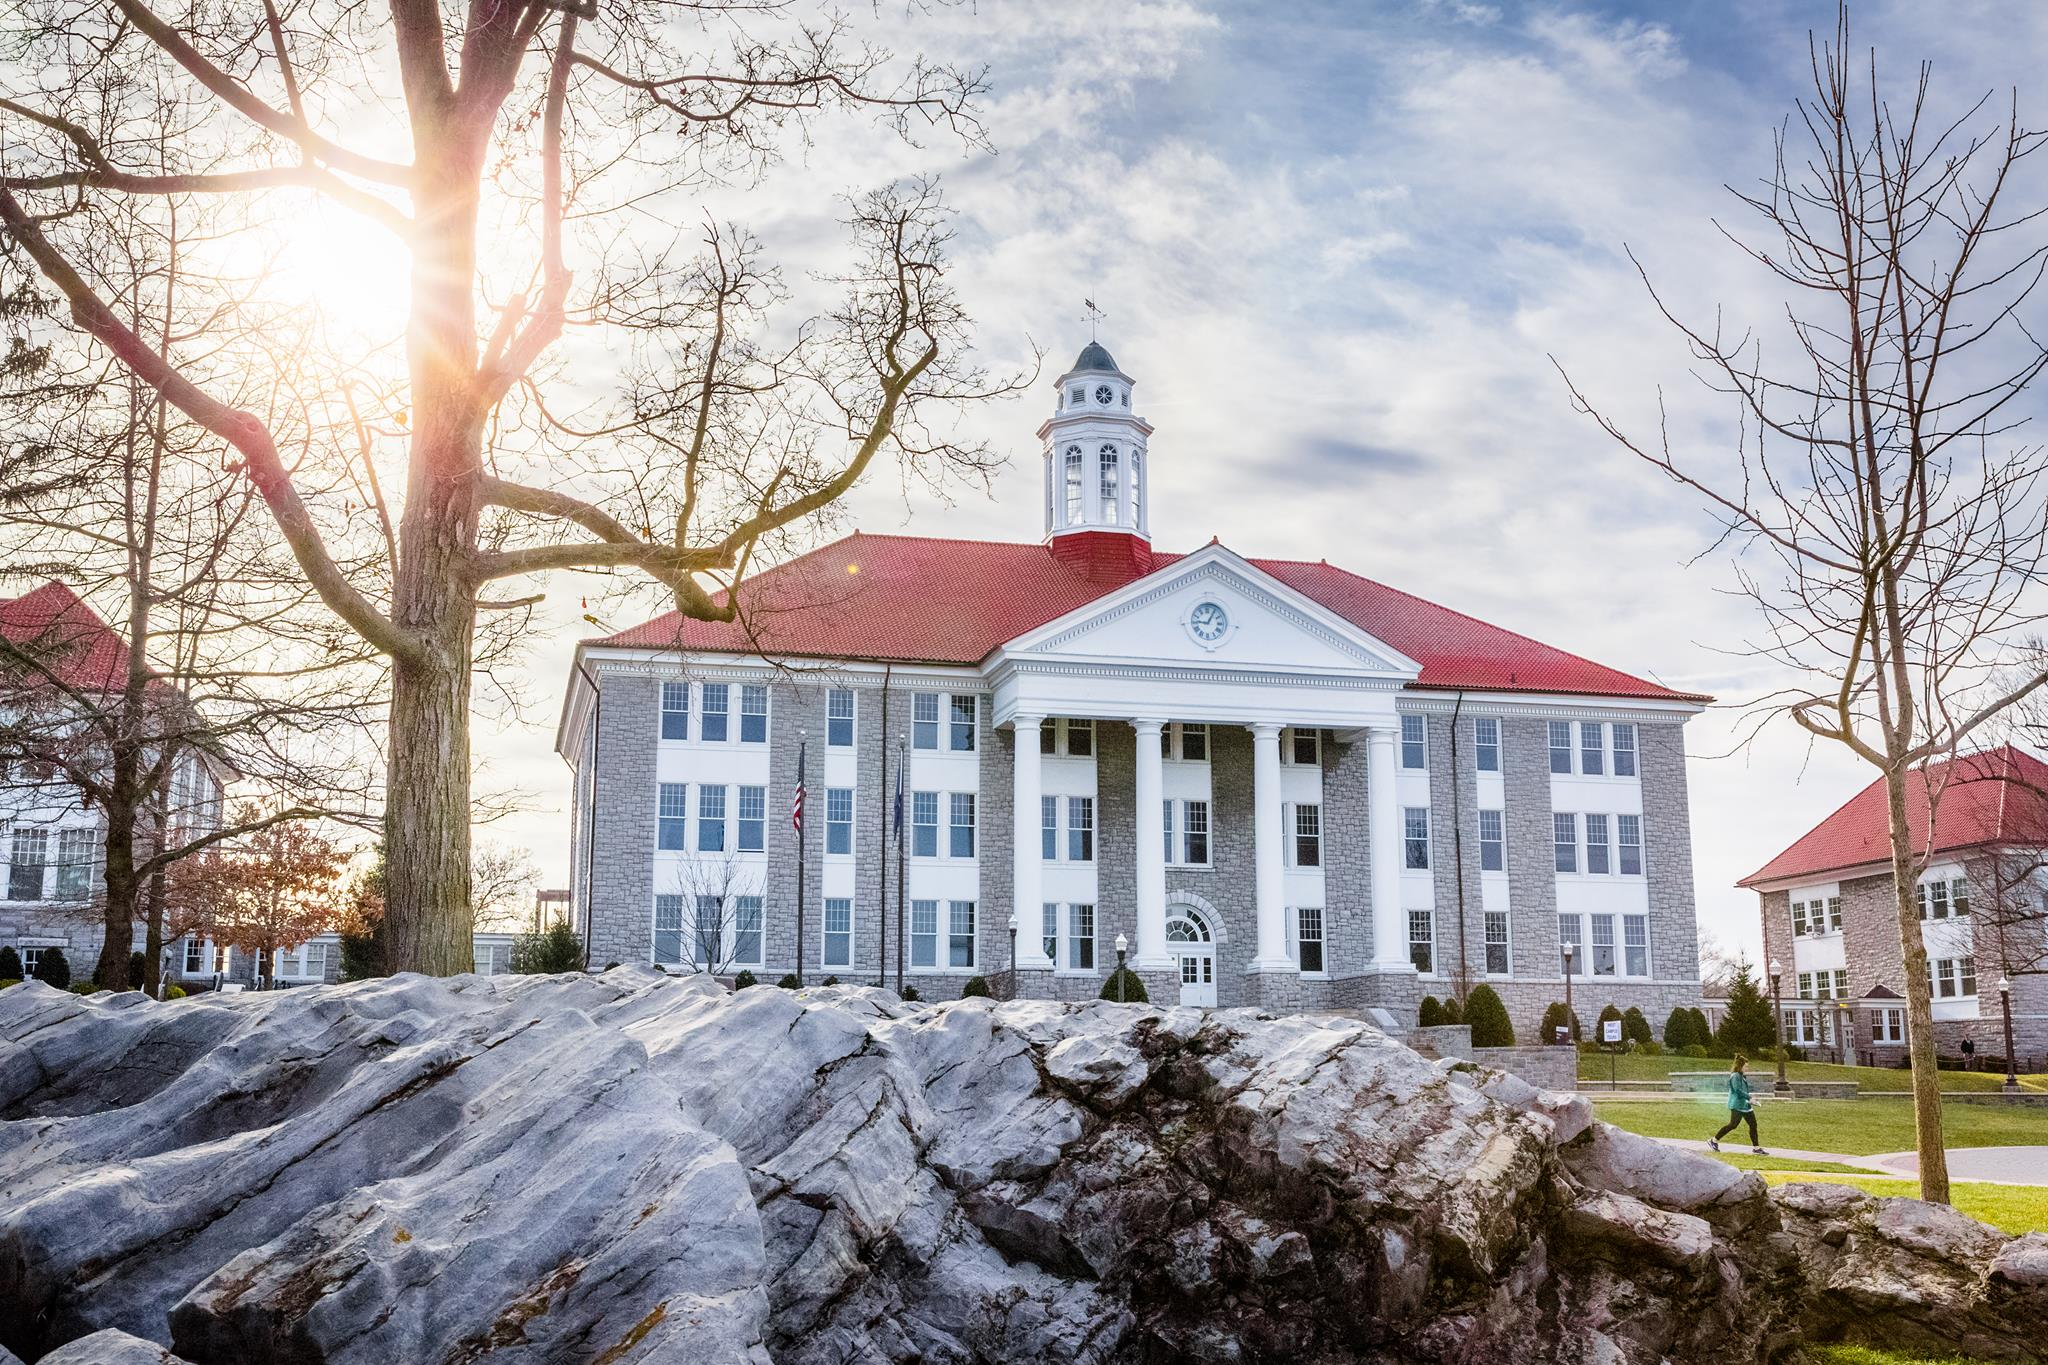 What Does it Cost to Attend James Madison University?